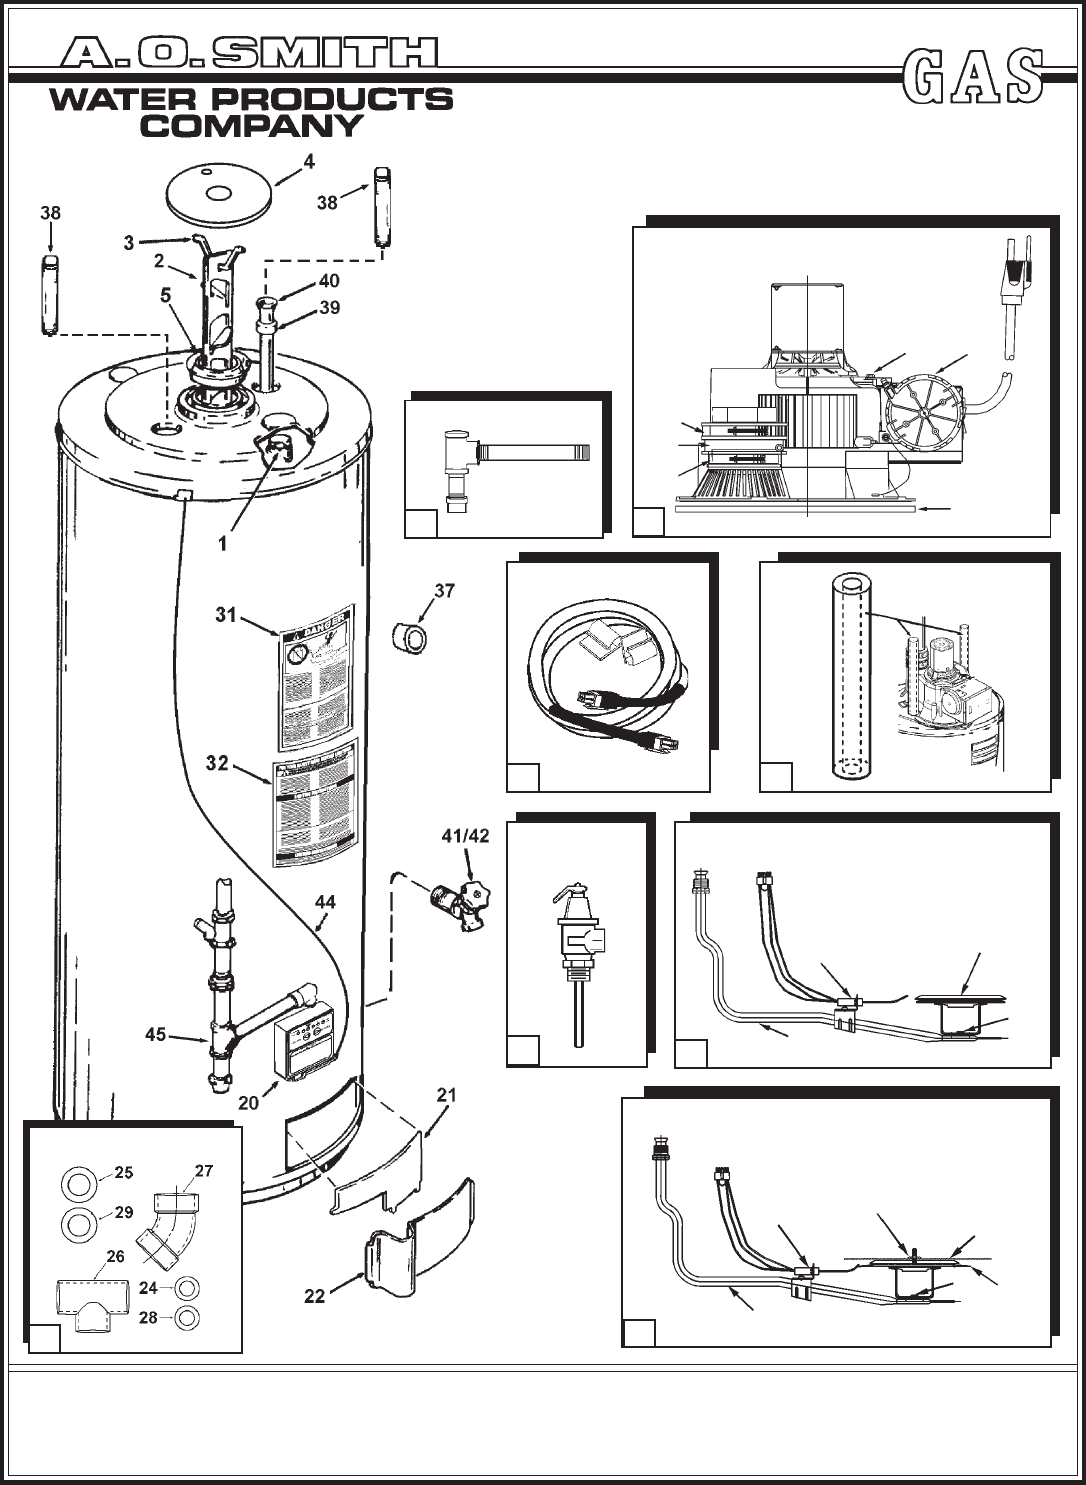 A.O. Smith Water Heater 101 Series manual